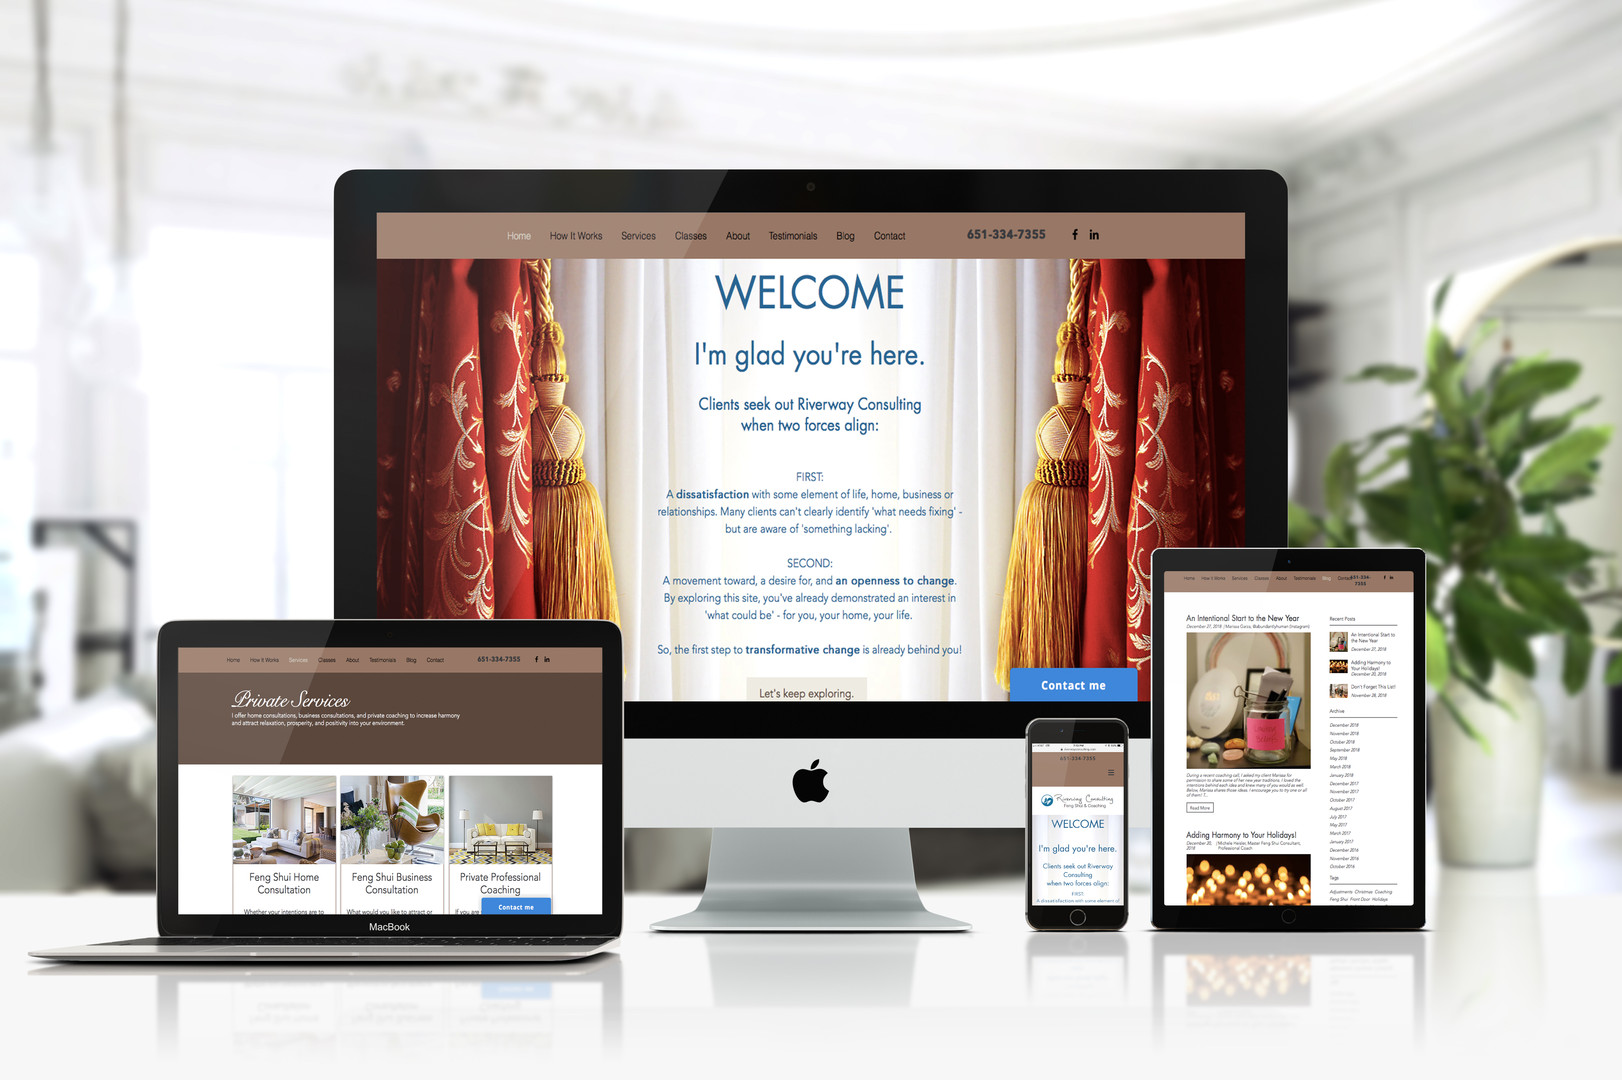 Our client Michele was looking for a boutique style website that demonstrates her services and expertise without overloading it with text and images. She was looking for a professional yet relaxed/calming feel.